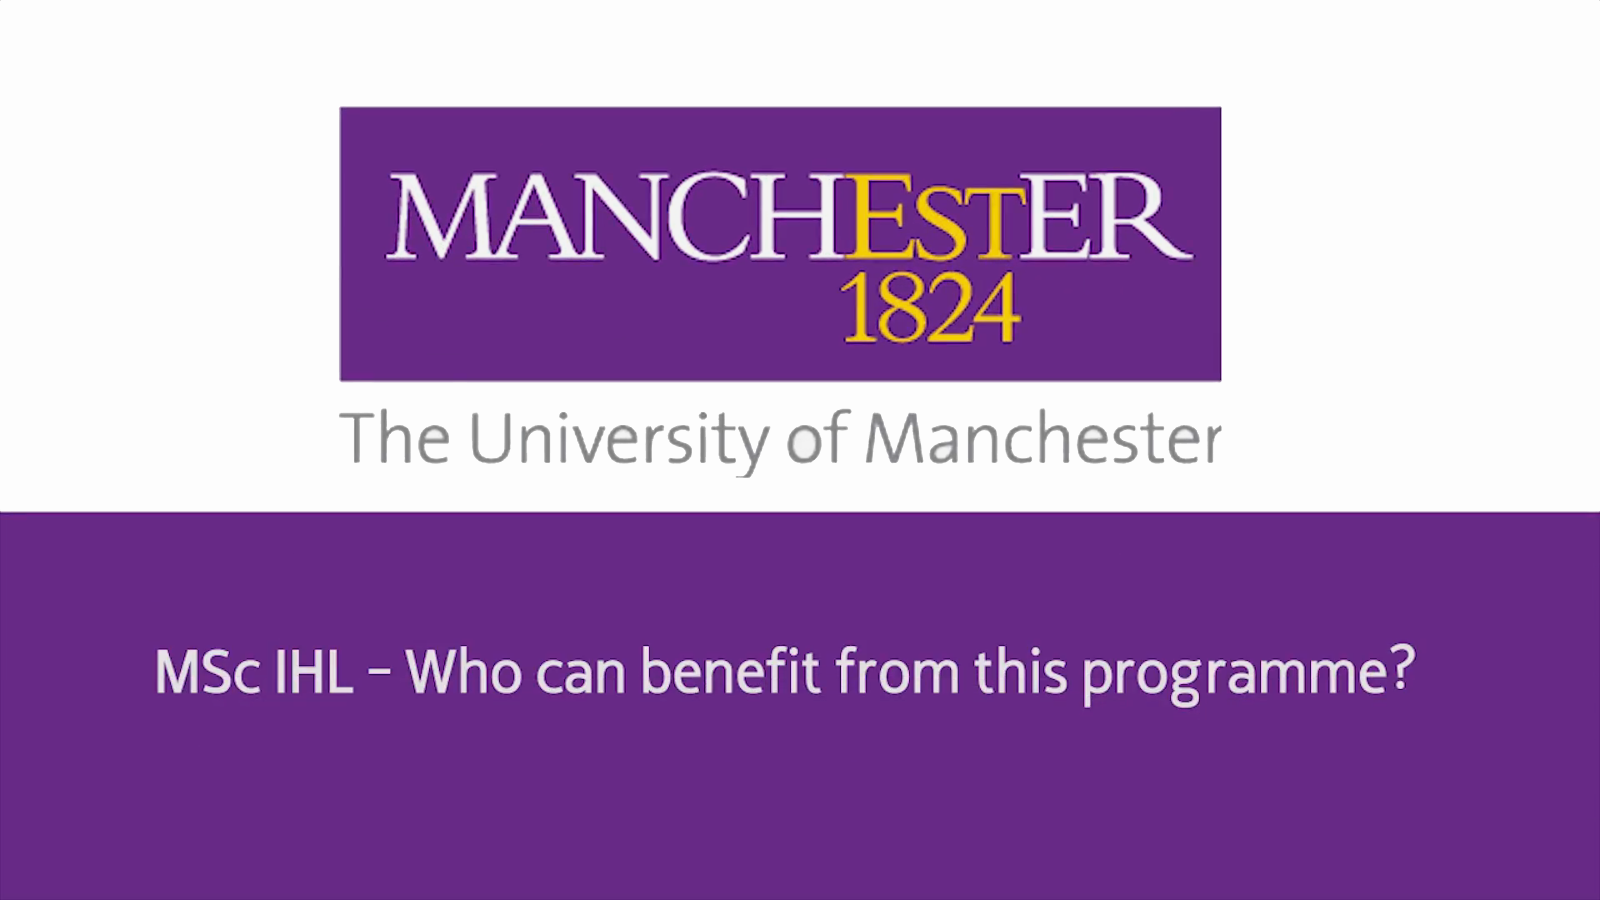 MSc IHL - Who can benefit from this programme